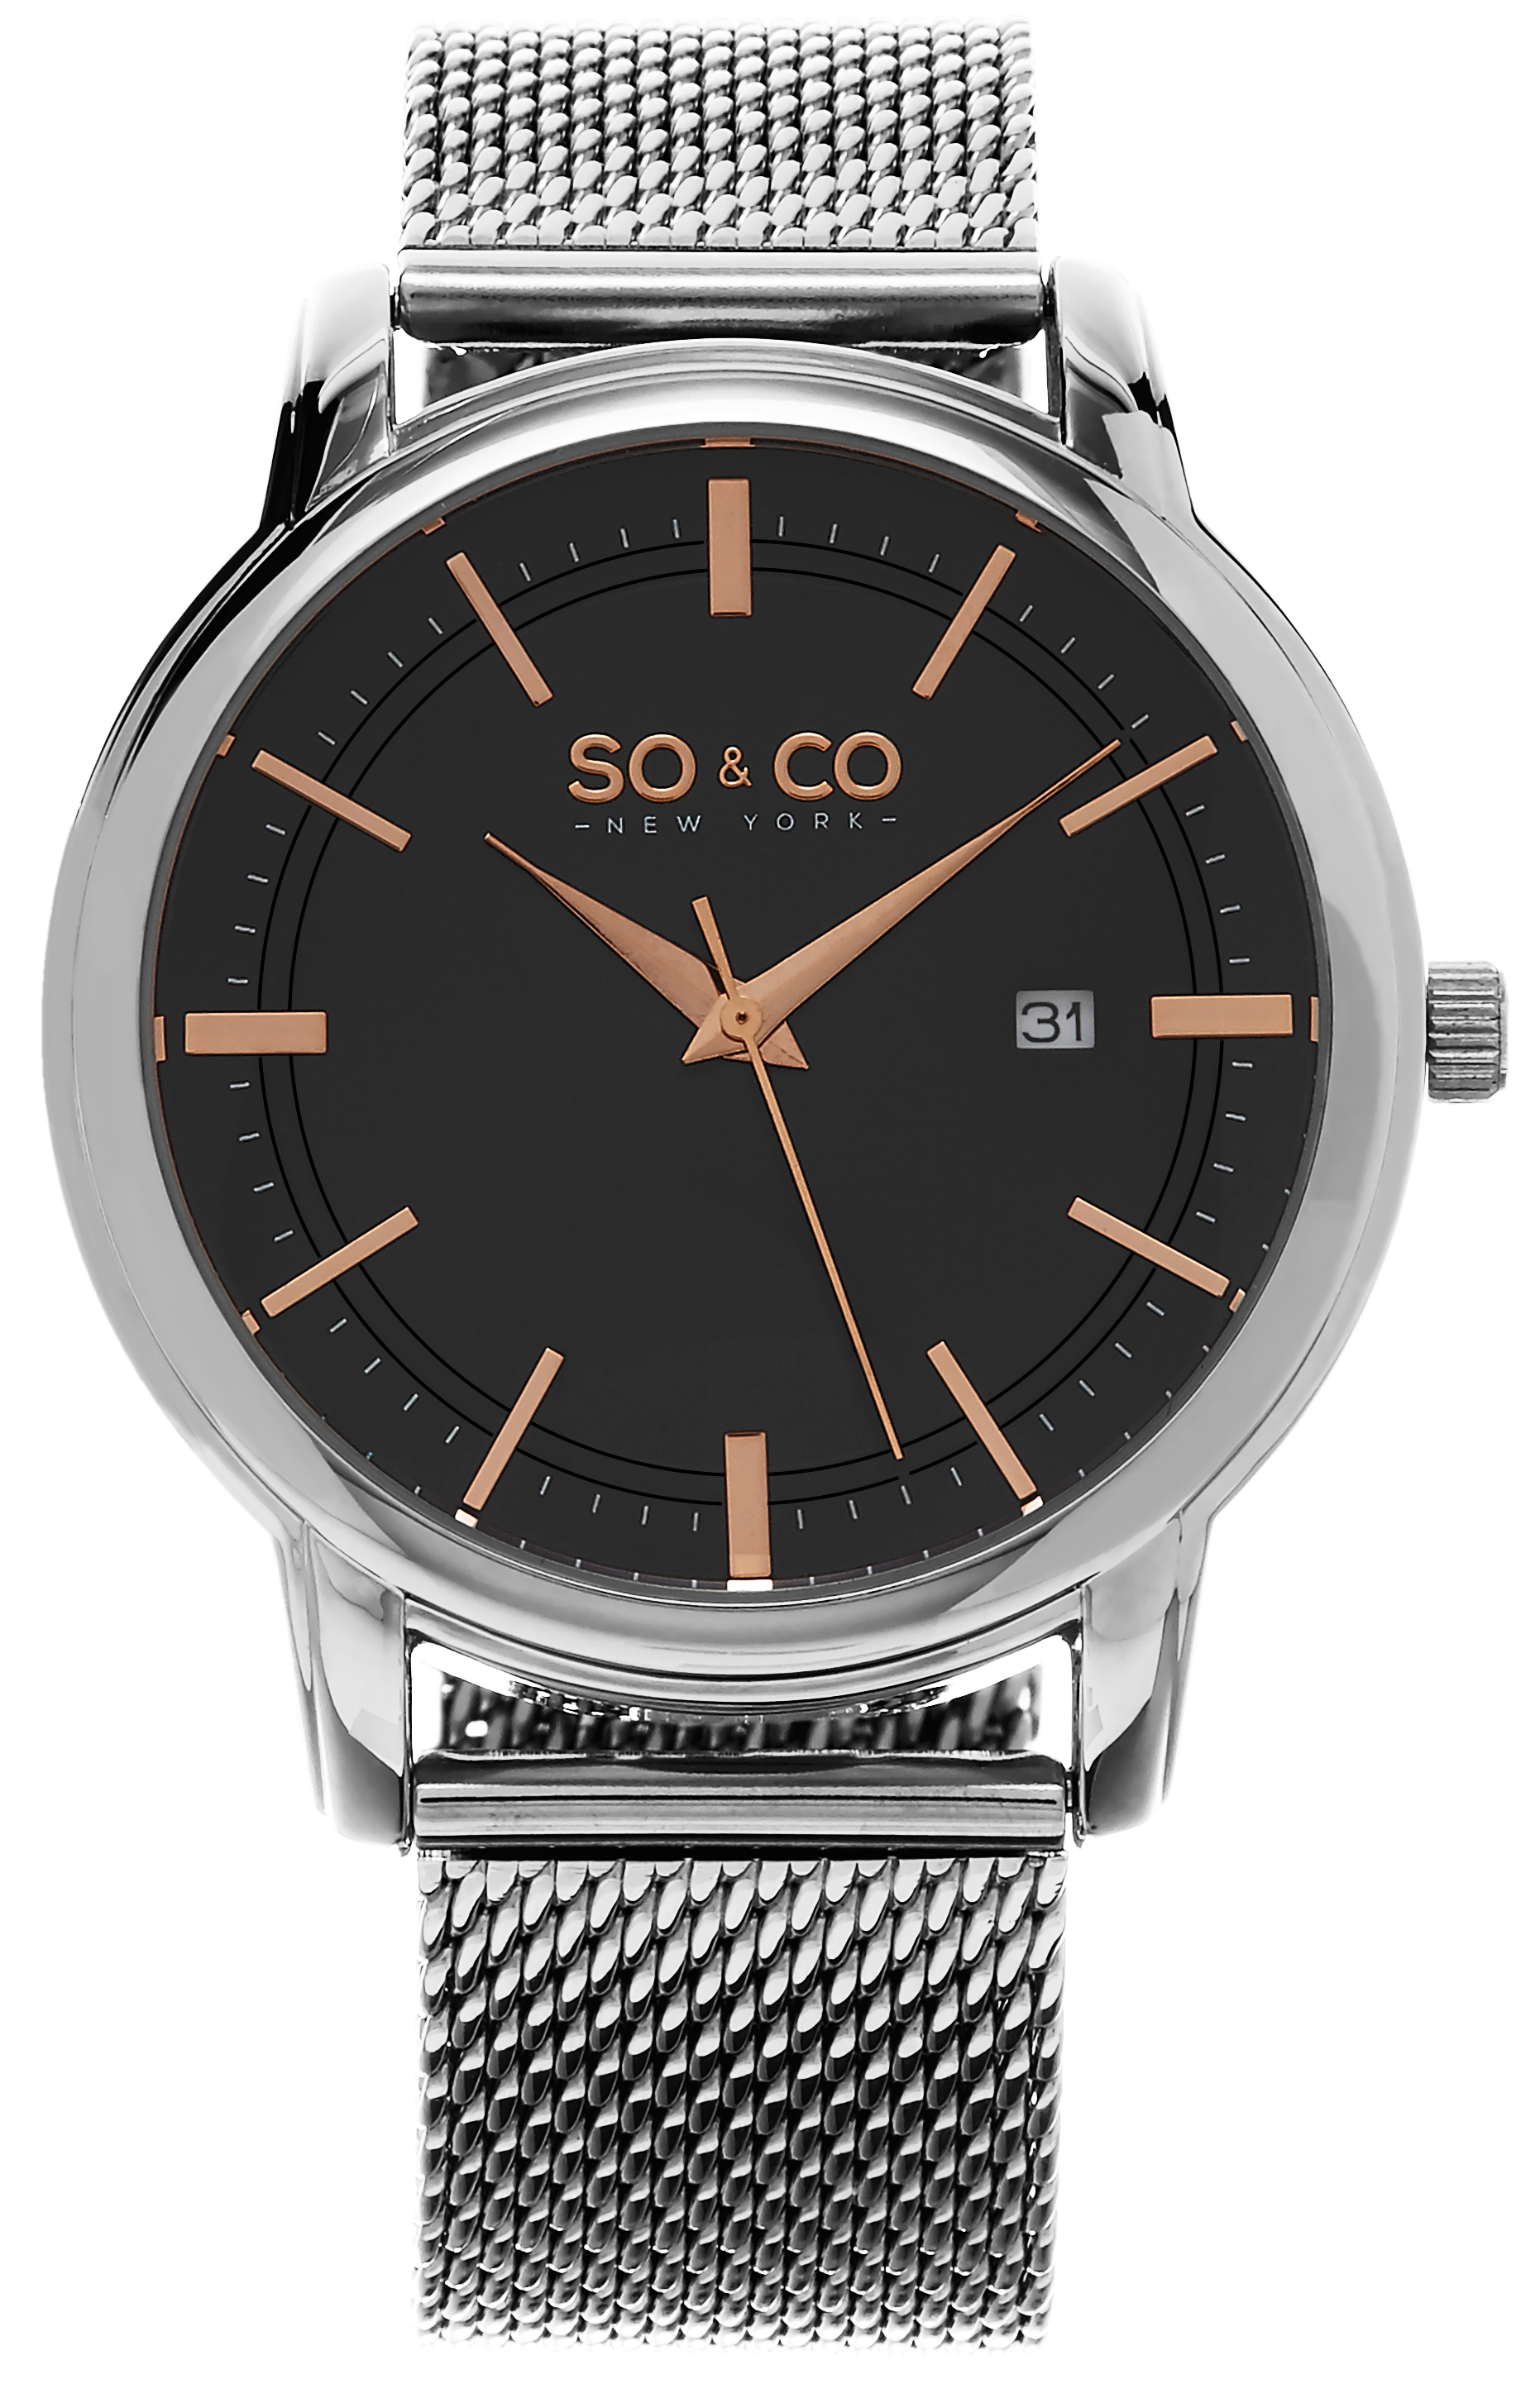 So & Co New York Madison Herreklokke 5207.3 Grå/Stål Ø41 mm - So & Co New York